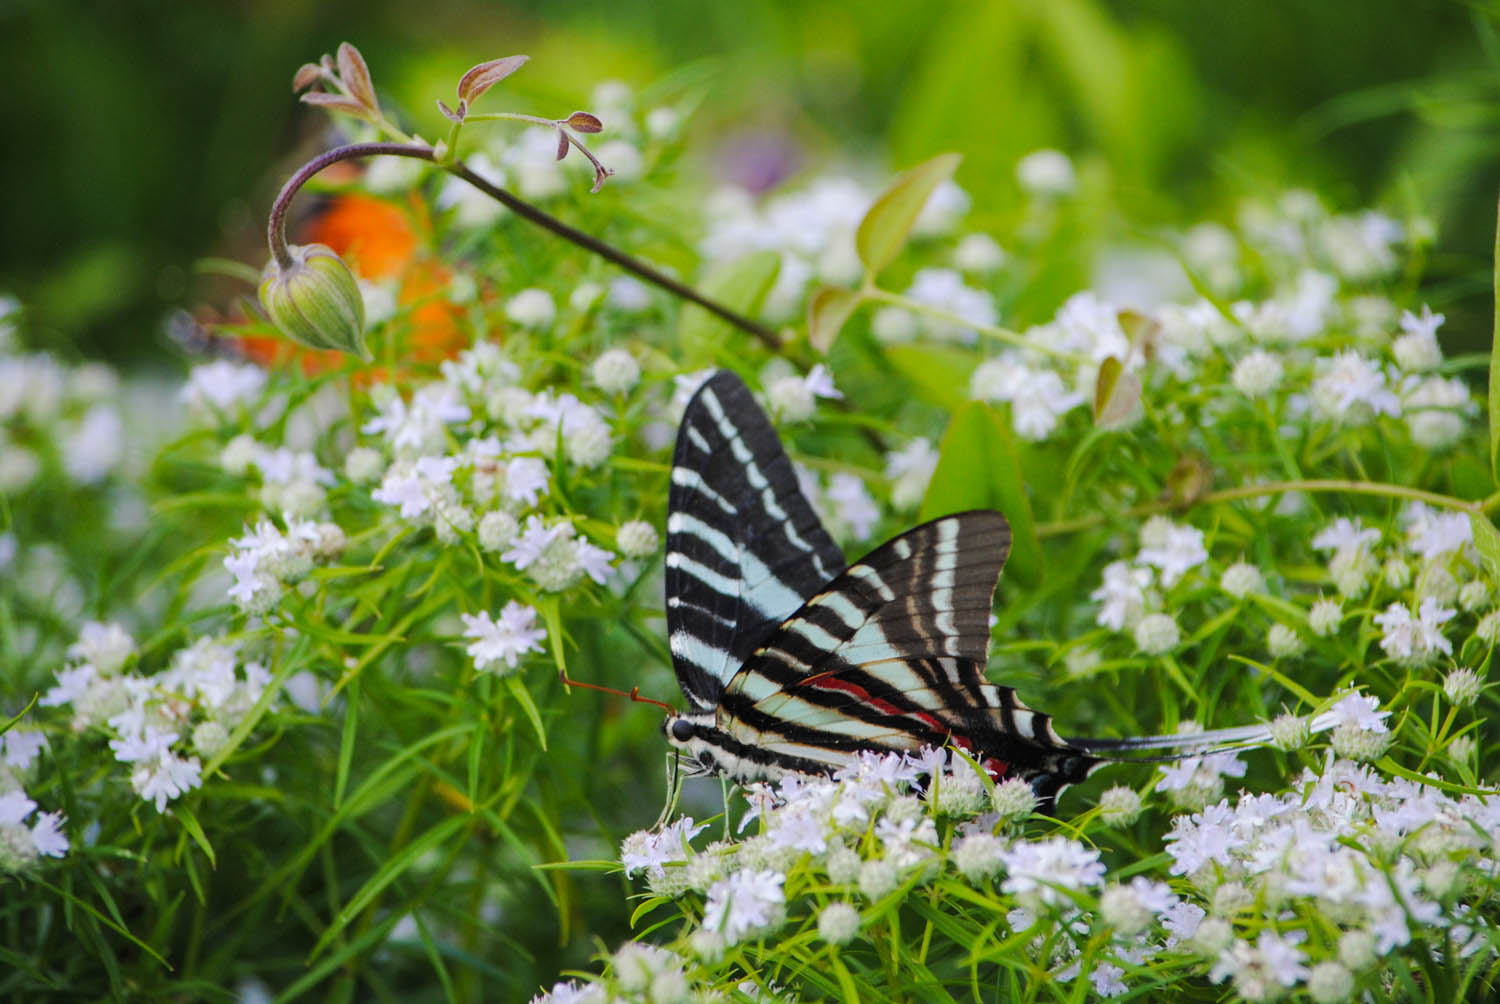 A    zebra swallowtail    waddling through the flowers on  Pycnanthemum tenuifolium . Yes, I know you can't see motion in this still picture, but trust me. It waddled.